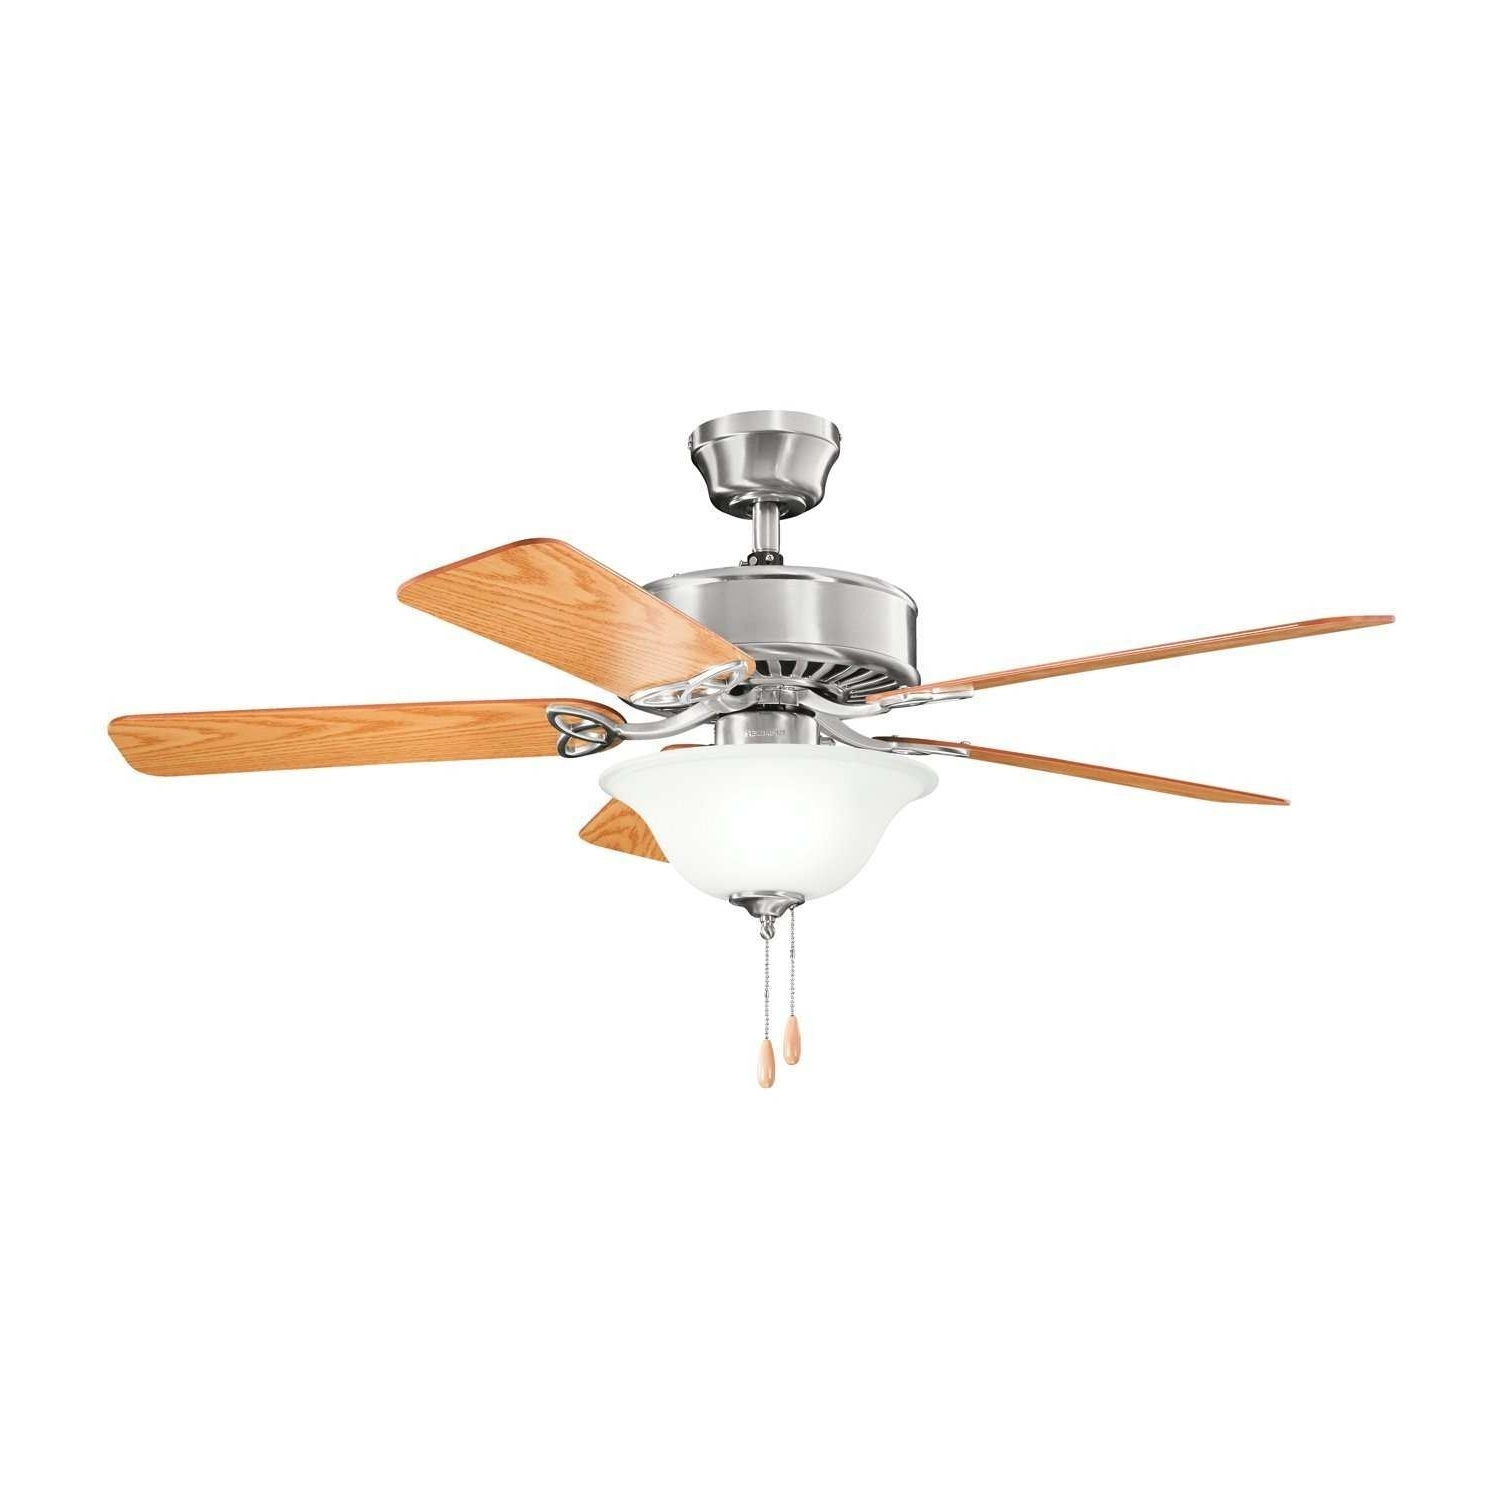 Latest Outdoor Ceiling Fans With Metal Blades Elegant Kichler Mwh 50 Pertaining To Outdoor Ceiling Fans At Amazon (Gallery 20 of 20)